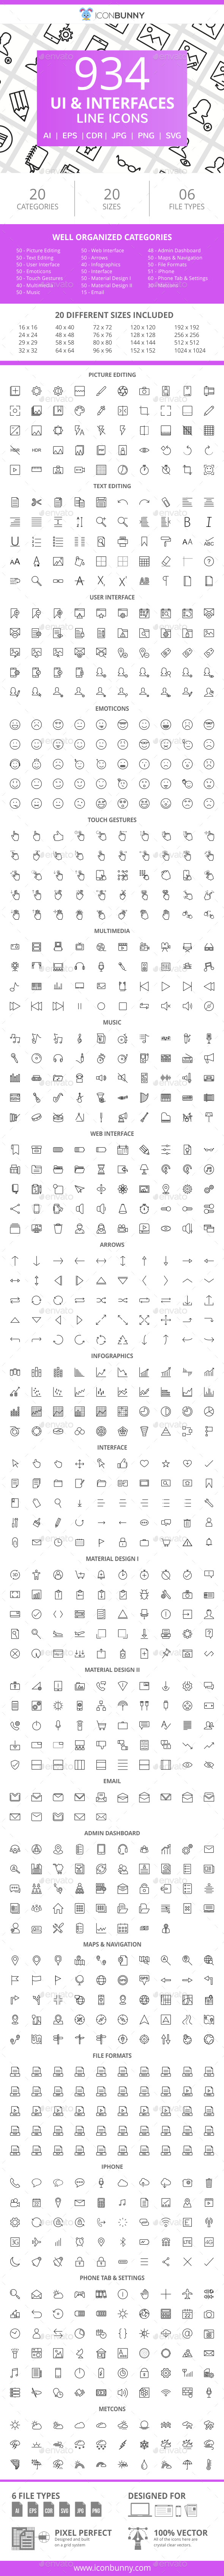 GraphicRiver 934 UI & Interfaces Line Icons 21043670